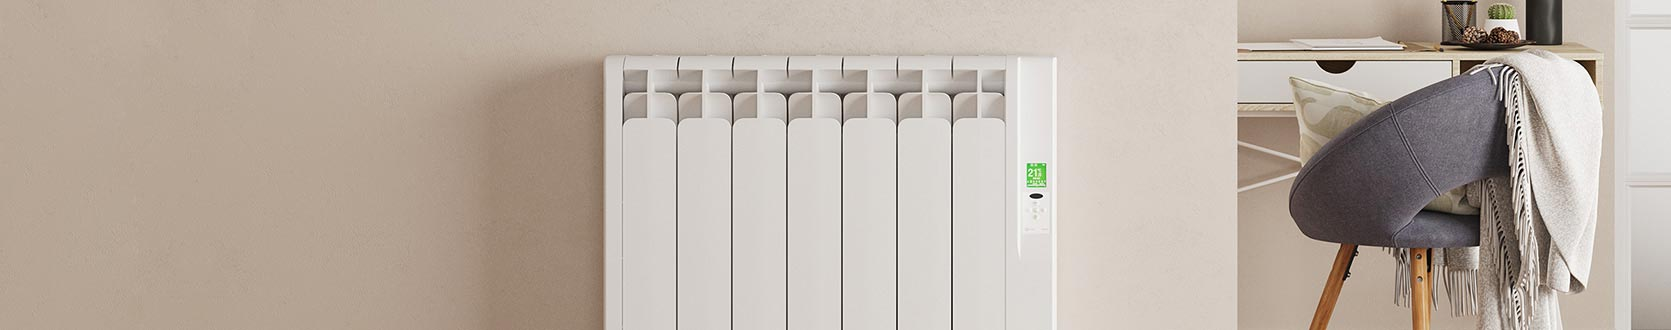 Rointe Kyros electric radiator wall mounted in hallway